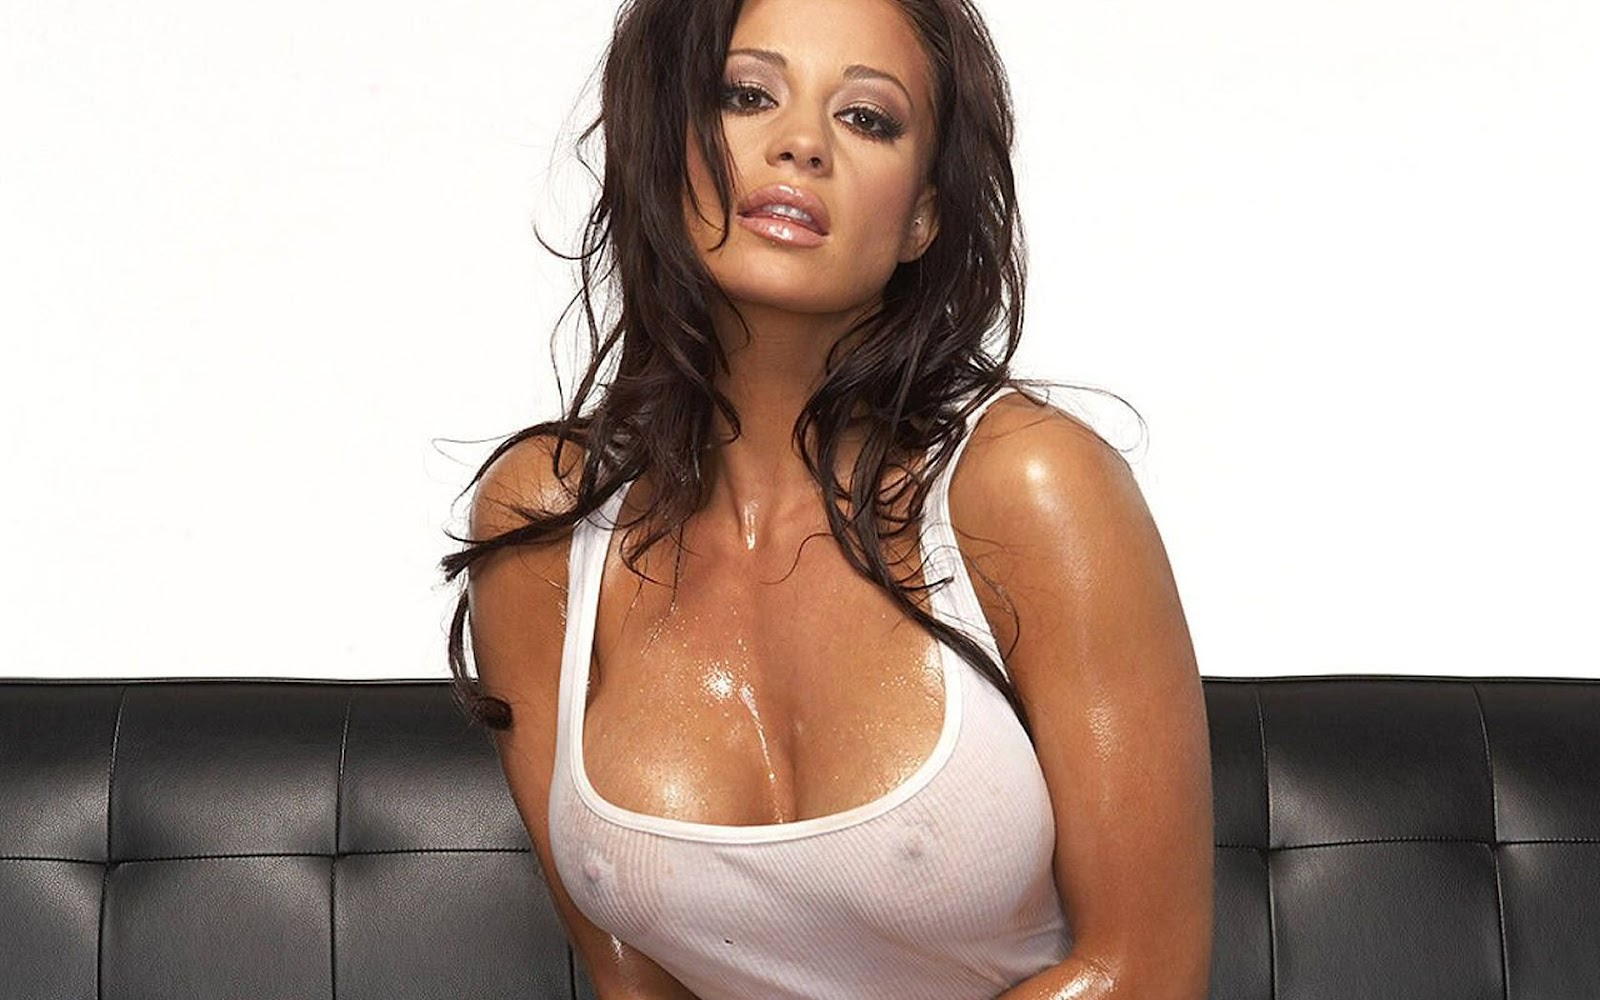 http://1.bp.blogspot.com/-GAy9f1AE8As/T5qBQtUqp9I/AAAAAAAACo4/hIZzd_y6UnE/s1600/candice_michelle_2012+wallpapers+05.jpg